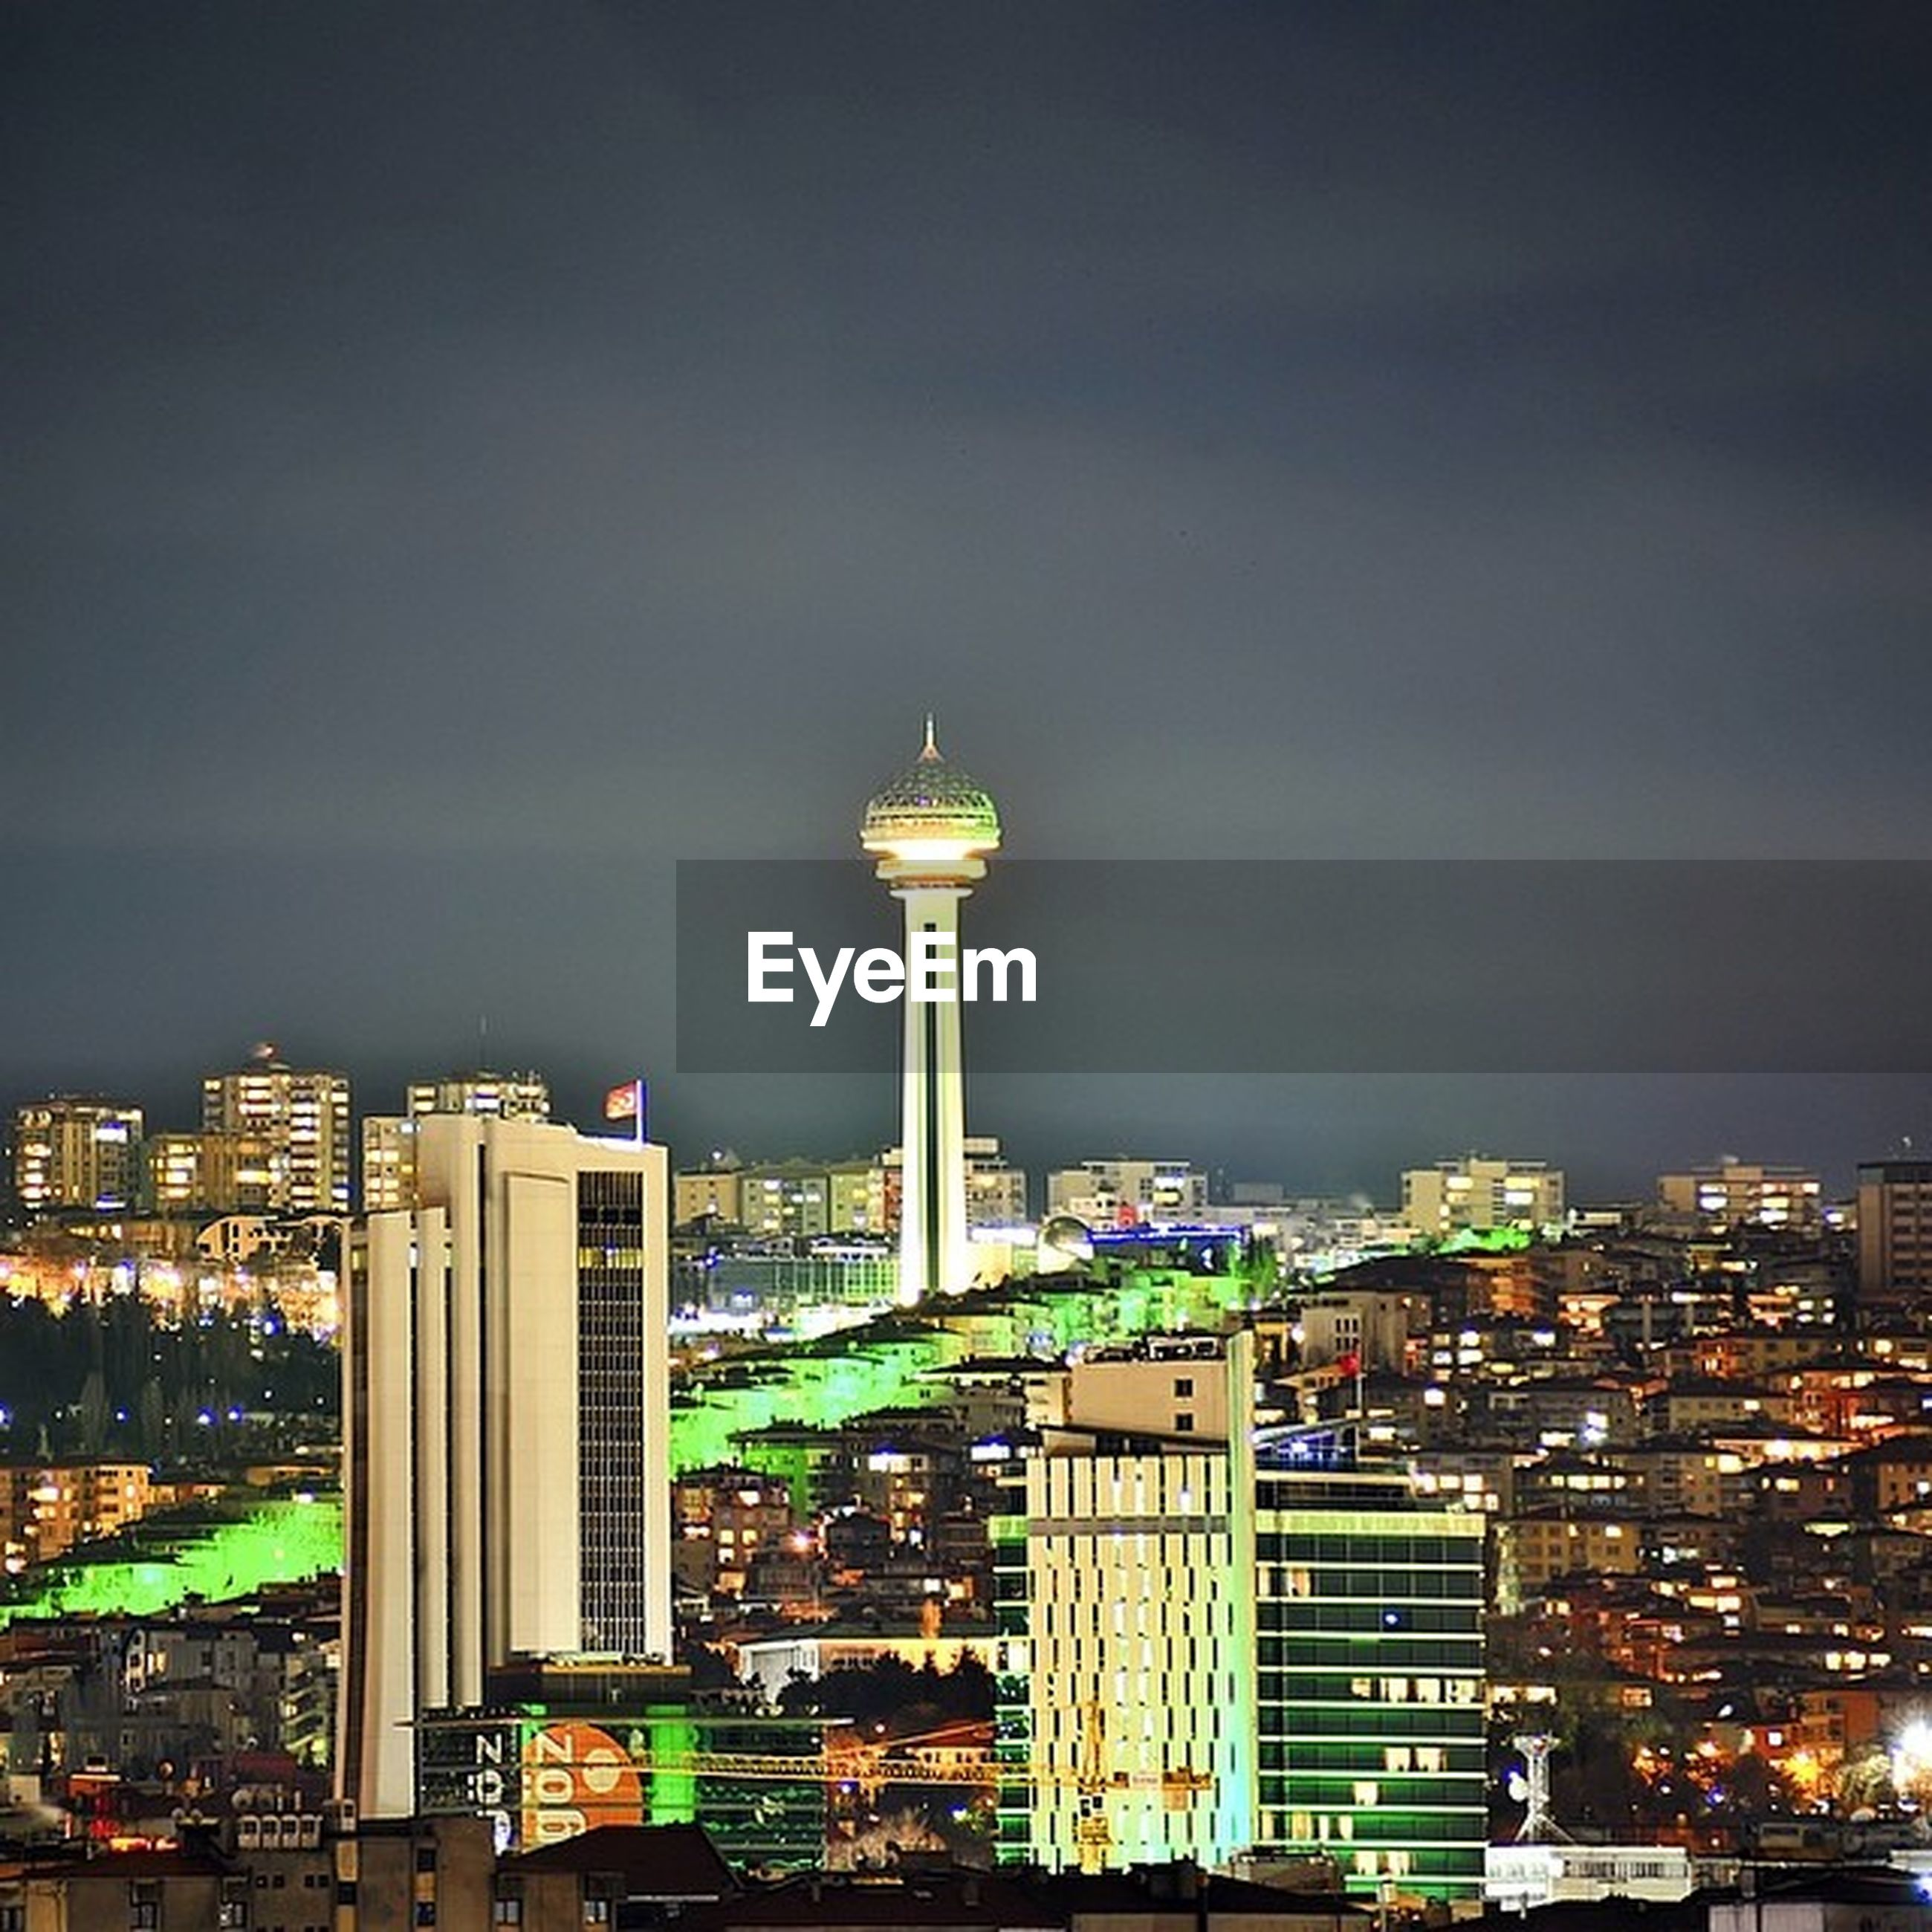 building exterior, architecture, built structure, city, illuminated, cityscape, tower, night, sky, tall - high, skyscraper, modern, capital cities, travel destinations, spire, communications tower, residential building, residential district, crowded, office building